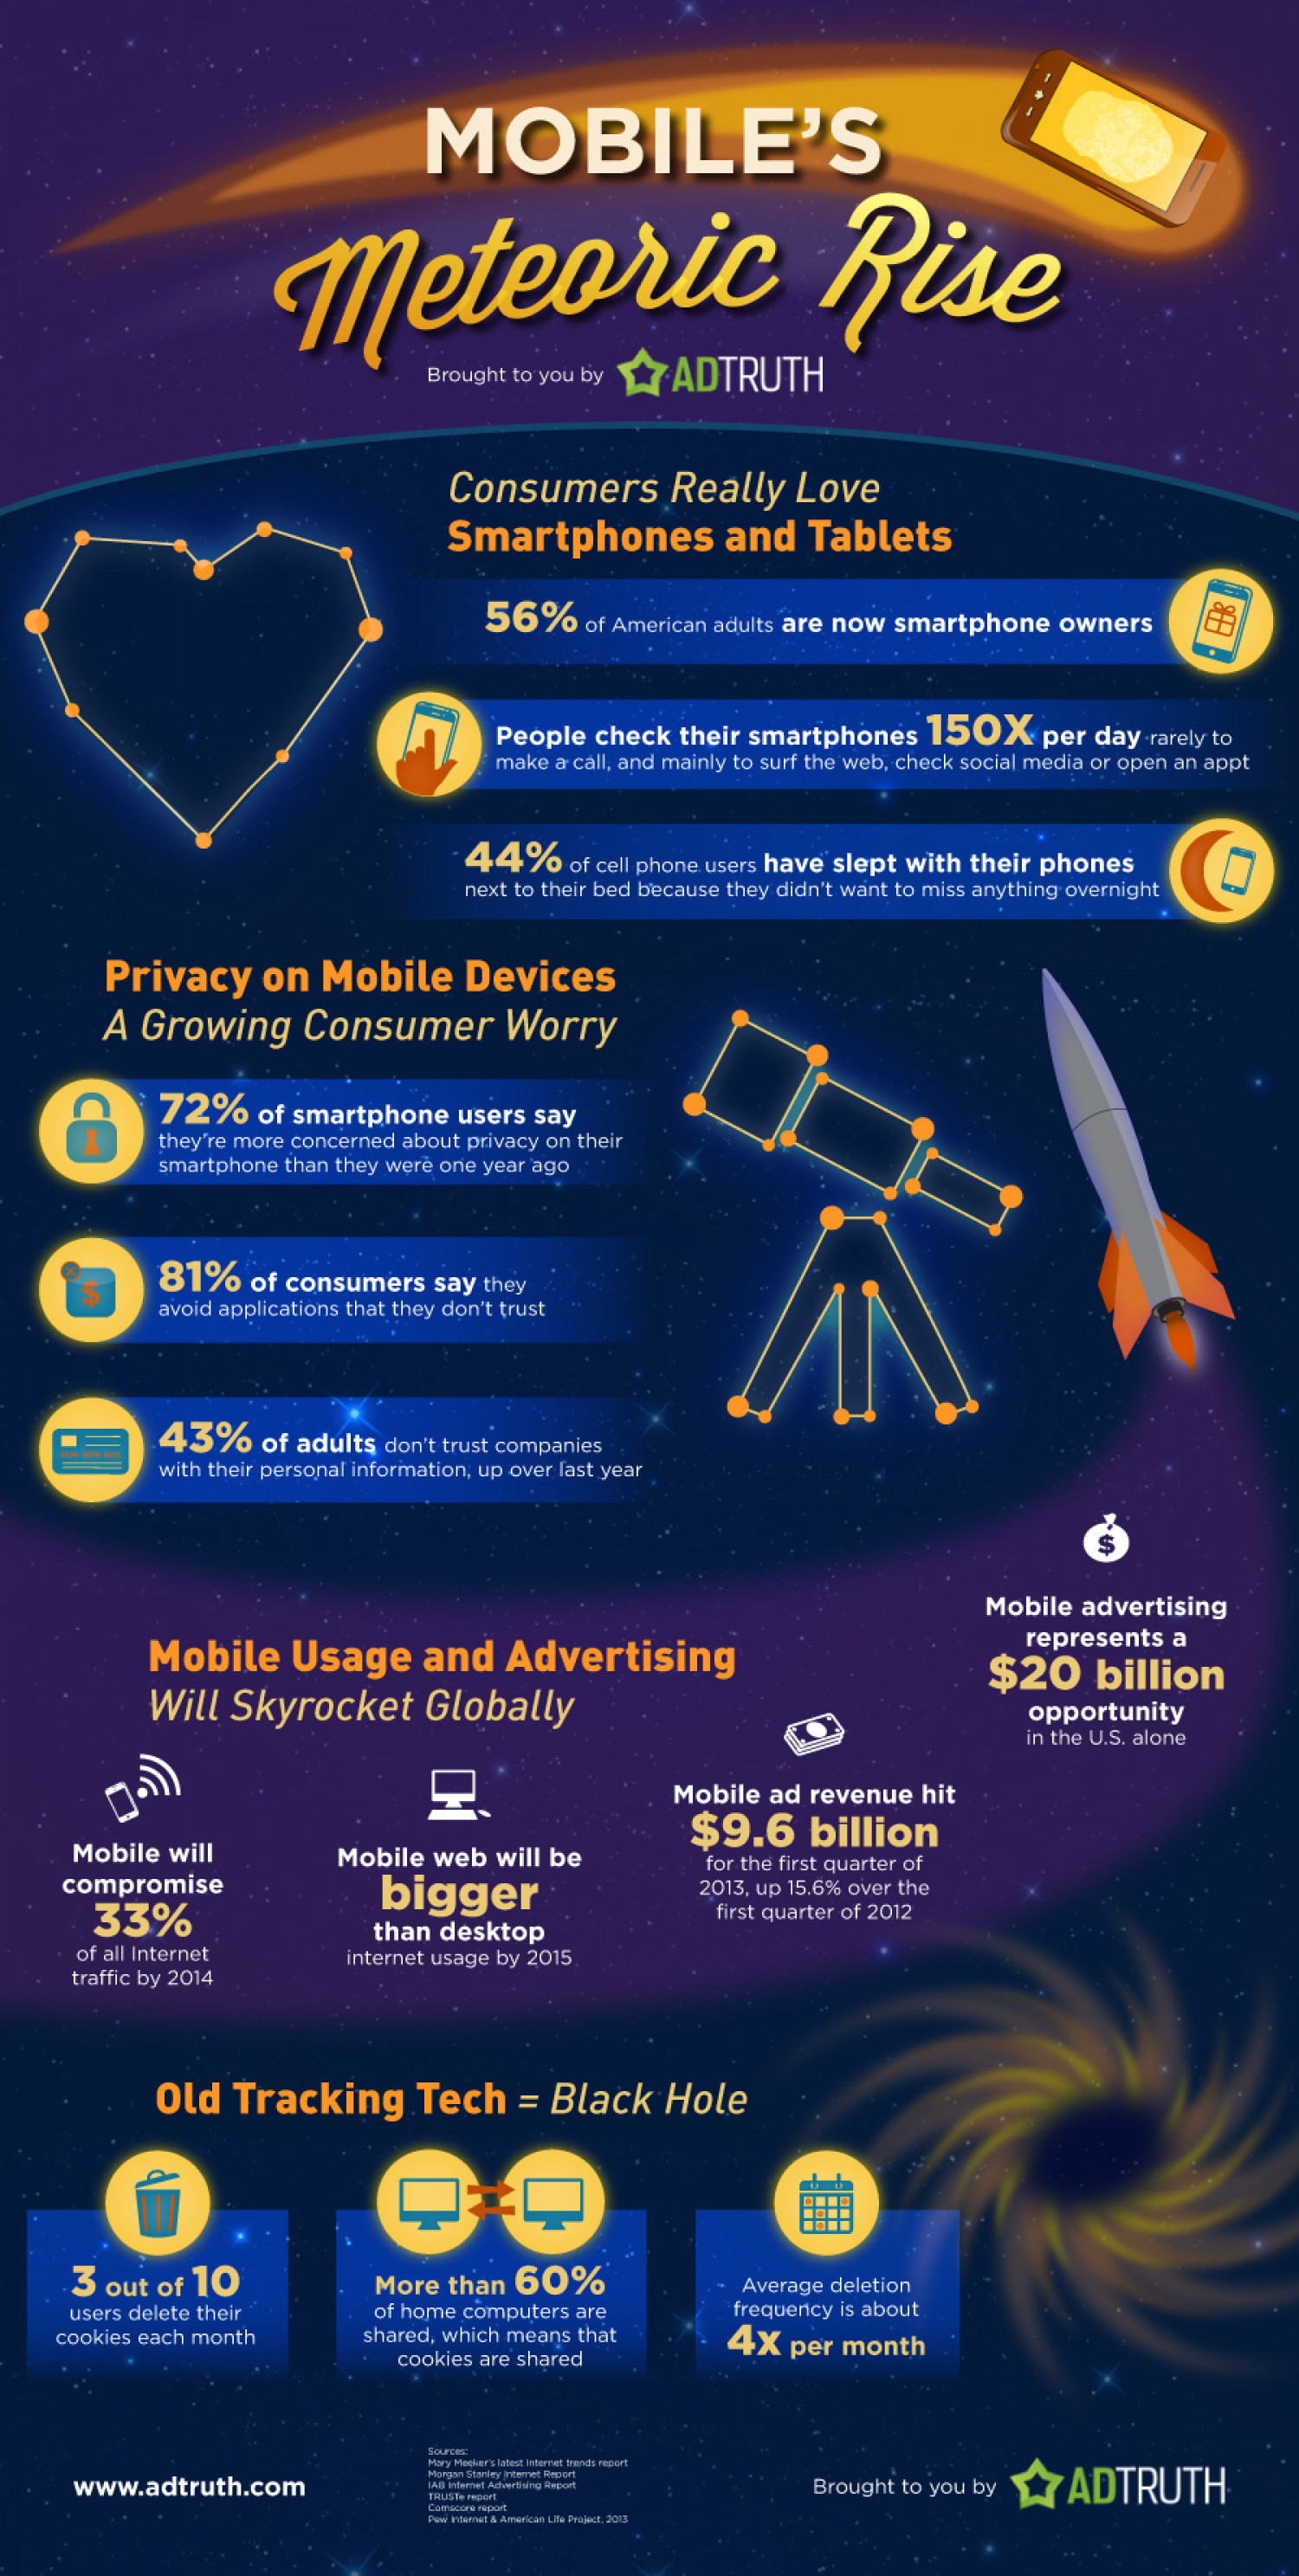 Mobile's Meteoric Rise Infographic